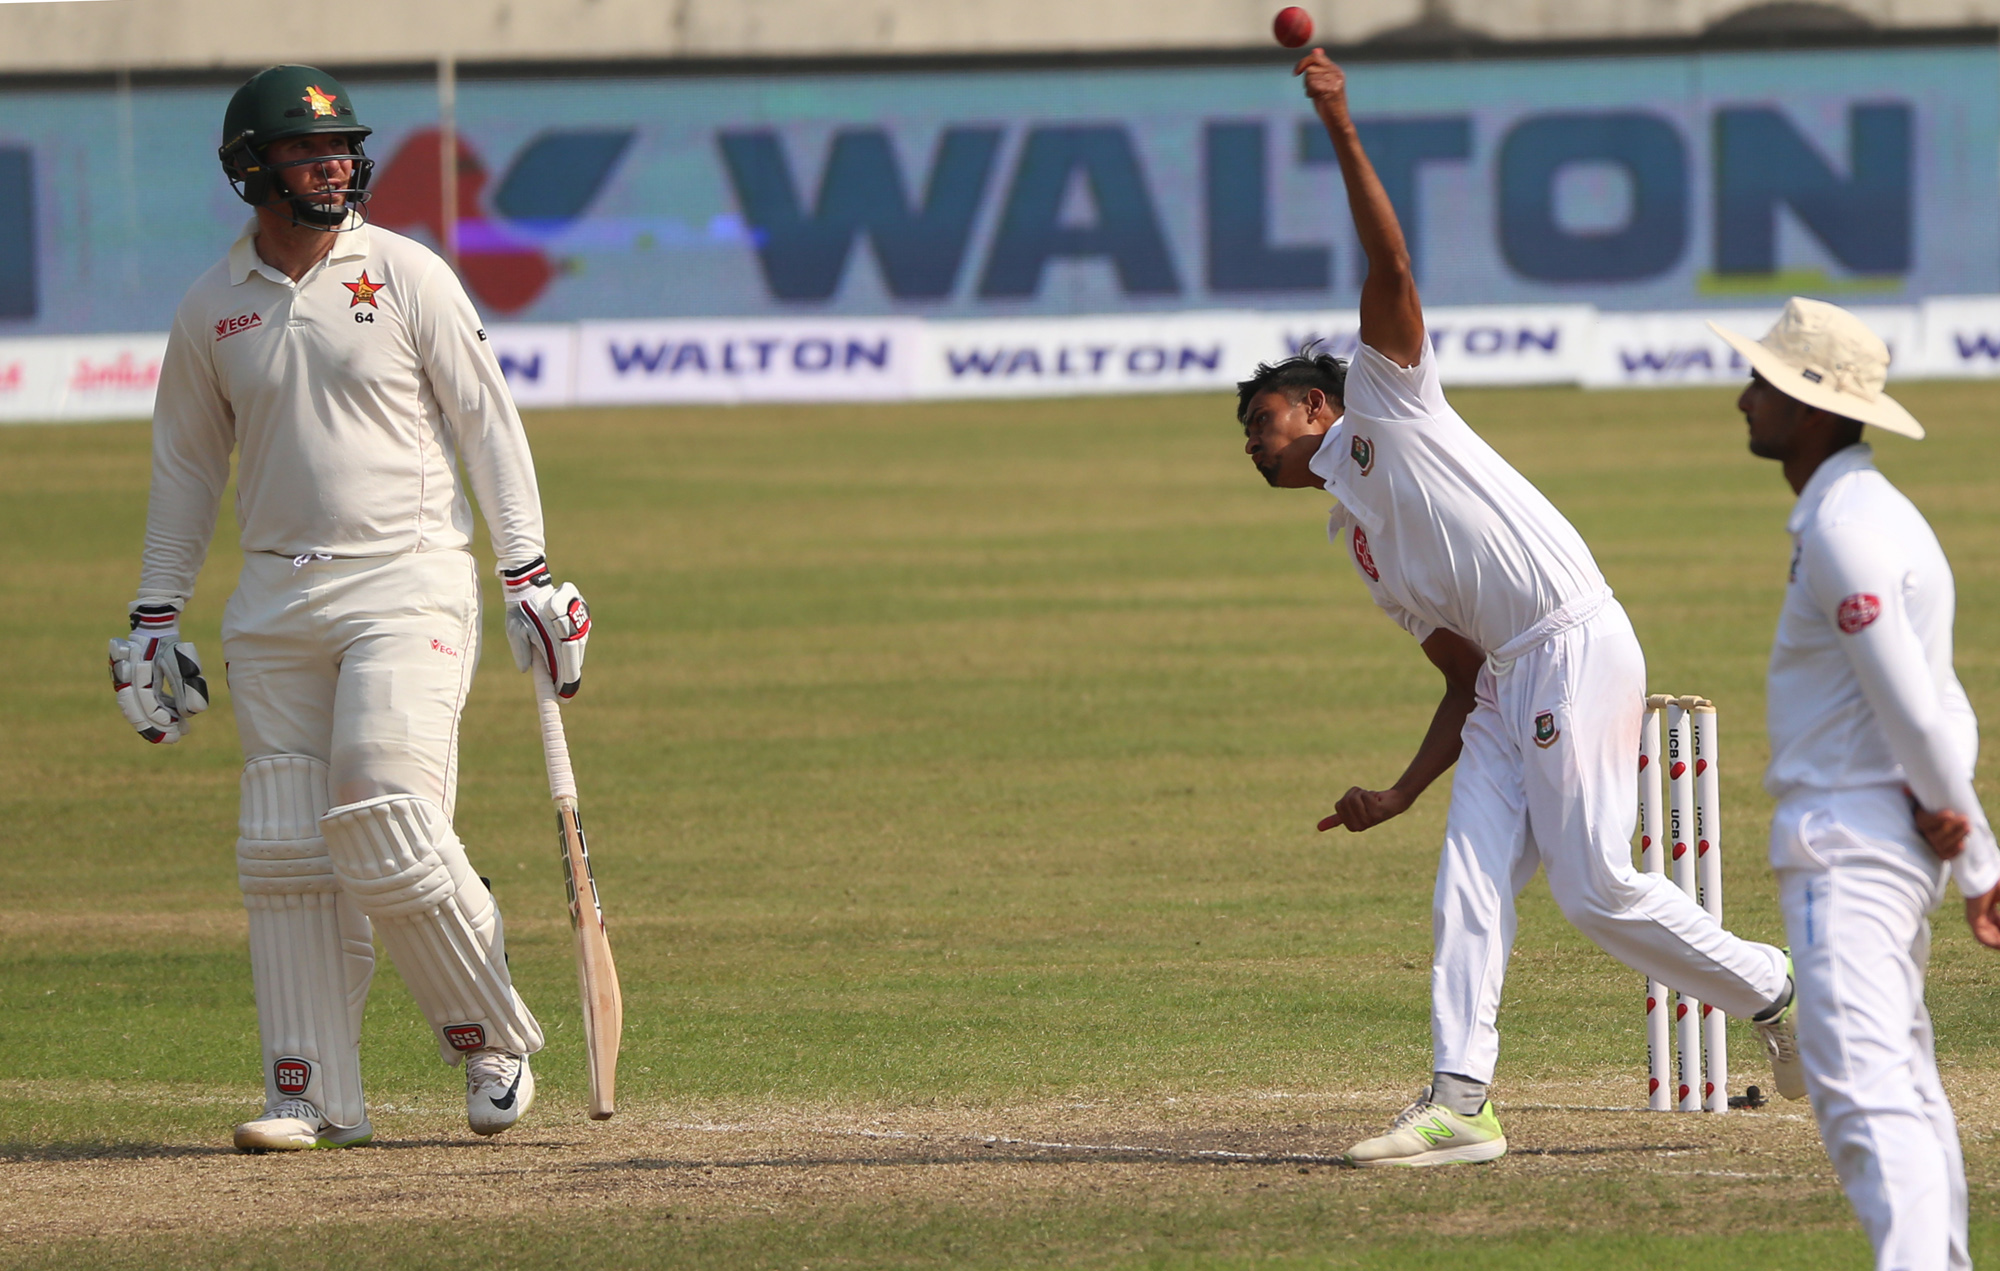 Taijul Islam (center) of Bangladesh in action during the third day play of the second Test between Bangladesh and Zimbabwe at the Sher-e-Bangla                National Cricket Stadium in the city's Mirpur on Tuesday. Taijul bagged five wickets at the cost of 107 runs.